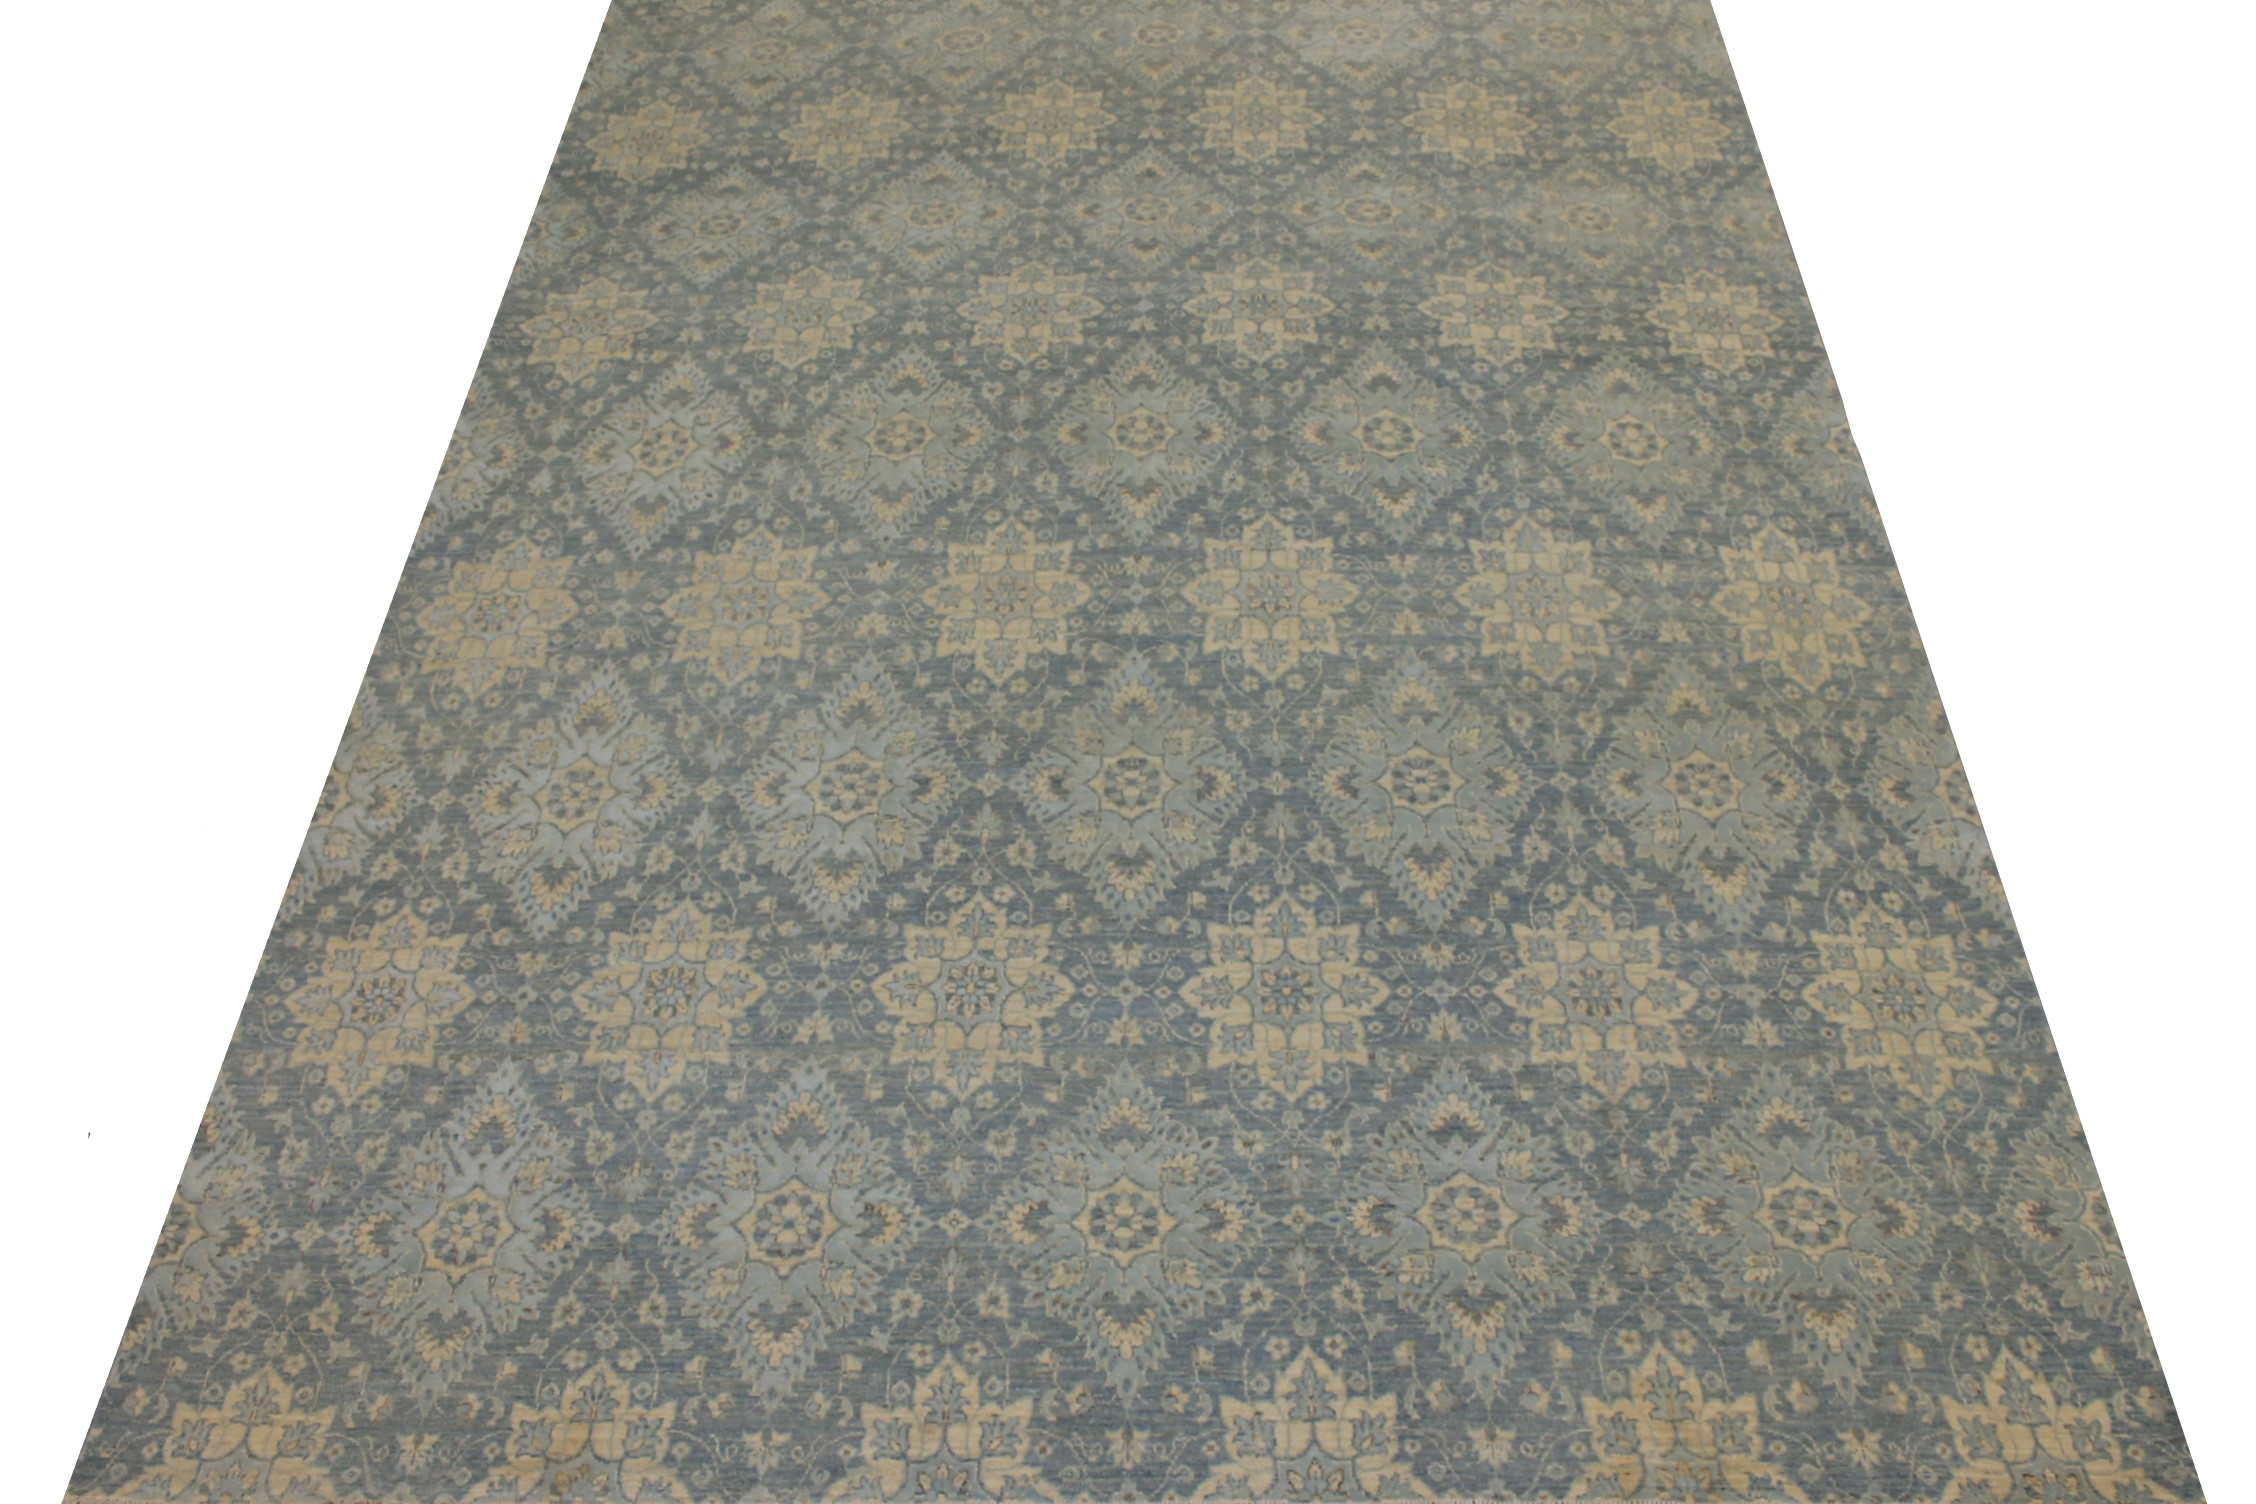 9x12 Peshawar Hand Knotted Wool Area Rug - MR18063